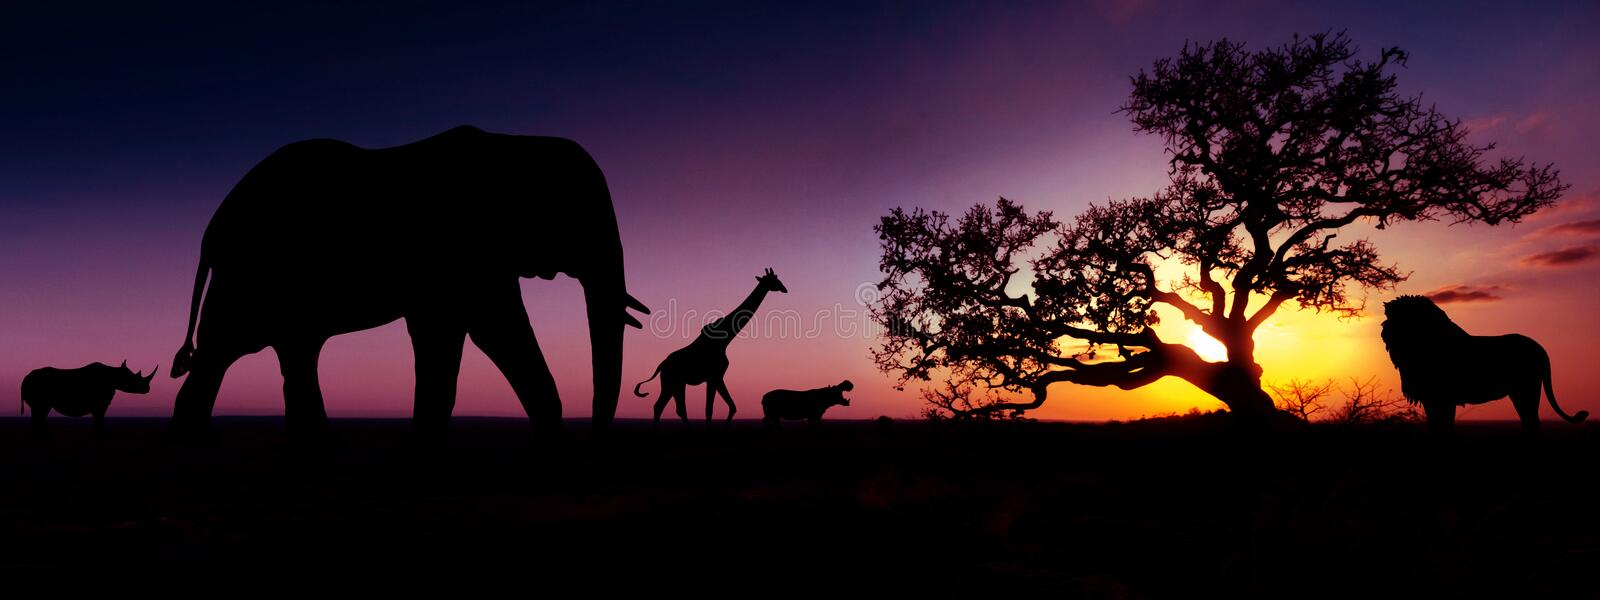 Famous african animals sunset silhouettes. Travel, wildlife and environment concept royalty free stock images